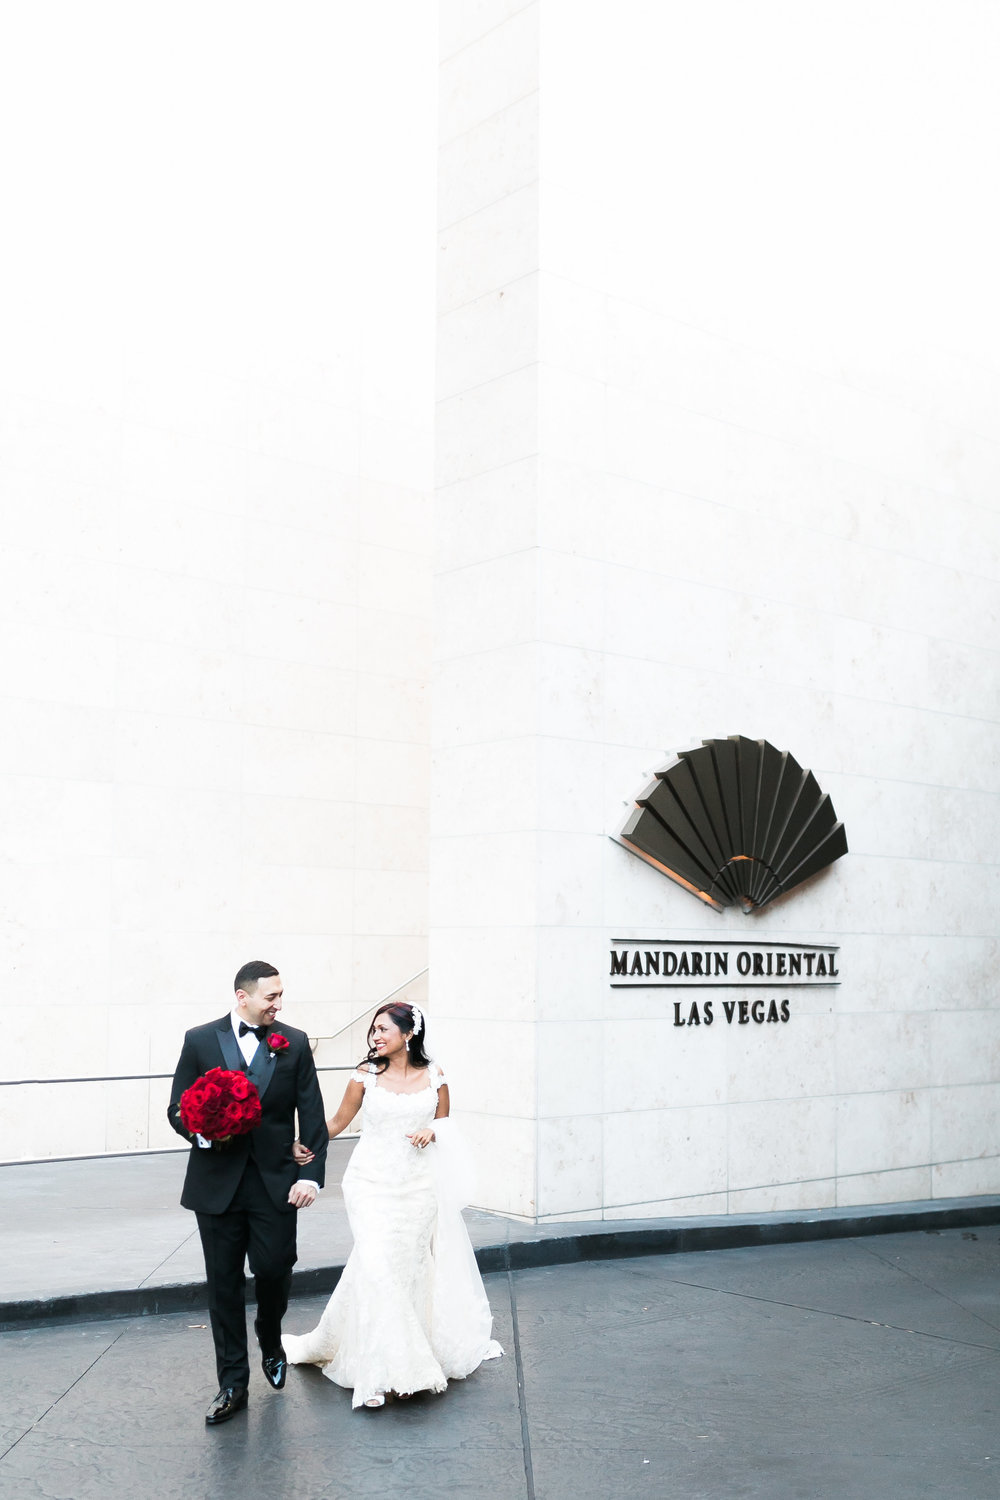 Bride and groom at their hotel reception.   Las Vegas Wedding Planner Andrea Eppolito shares this multicultural wedding.  Photo by J.Anne Photography. Wedding at Mandarin Oriental Las Vegas,